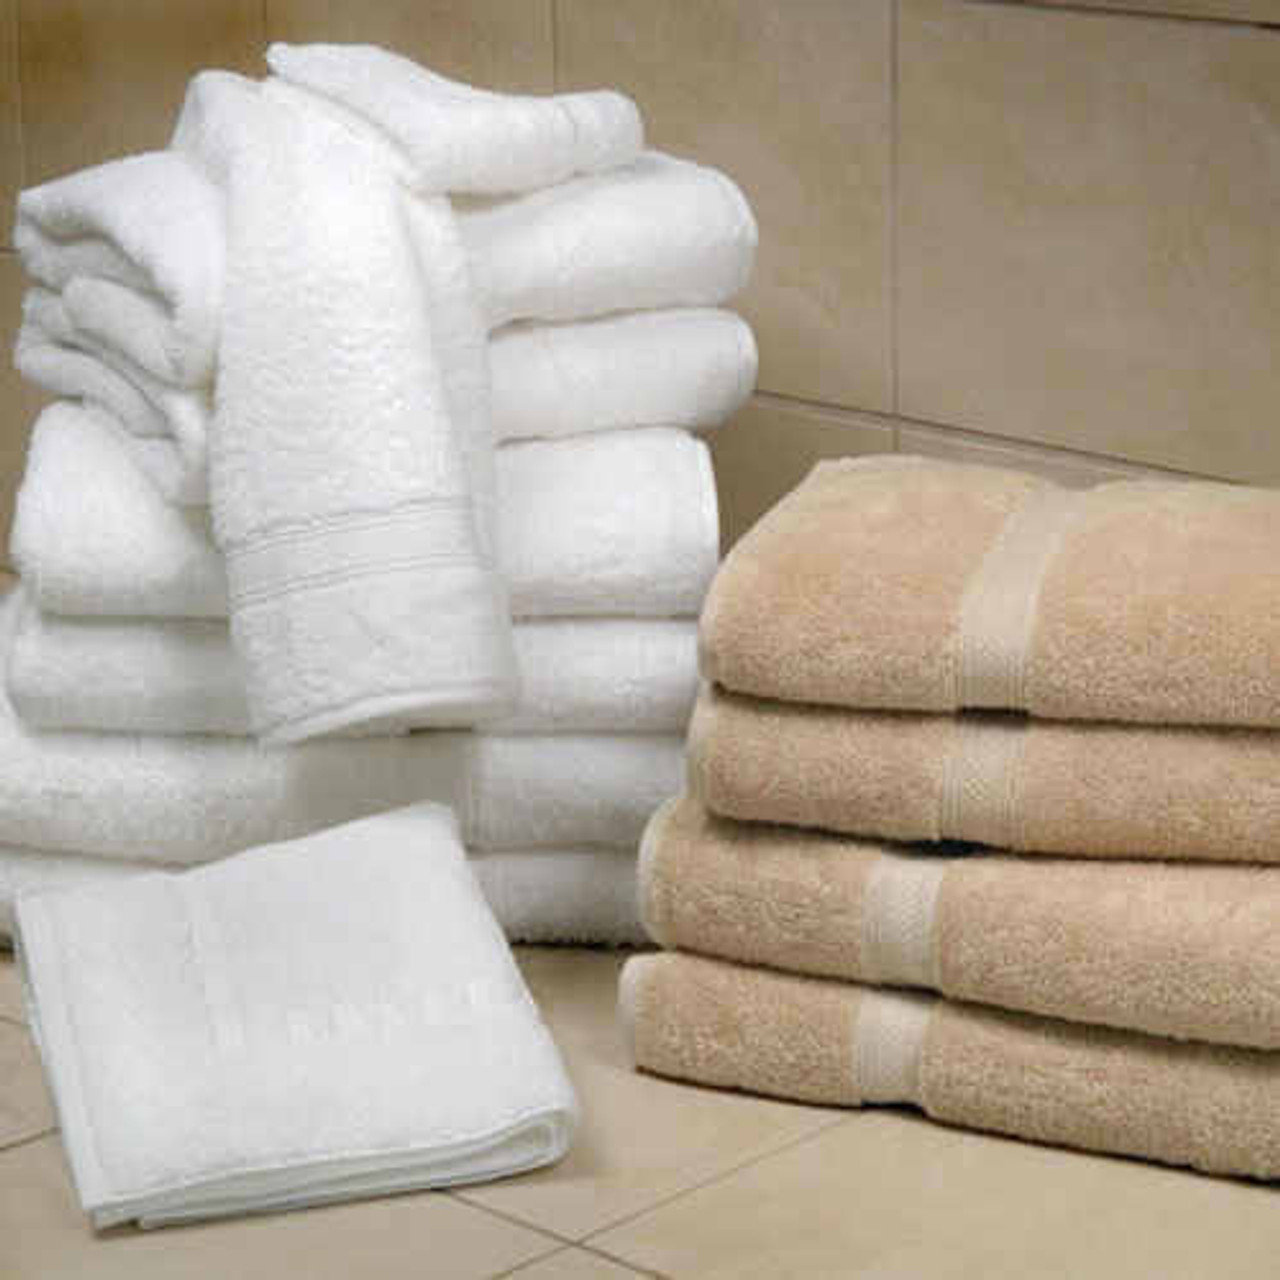 1888 Mills 1888 Mills Towels or Magnificence or 100percent Pima or Wholesale